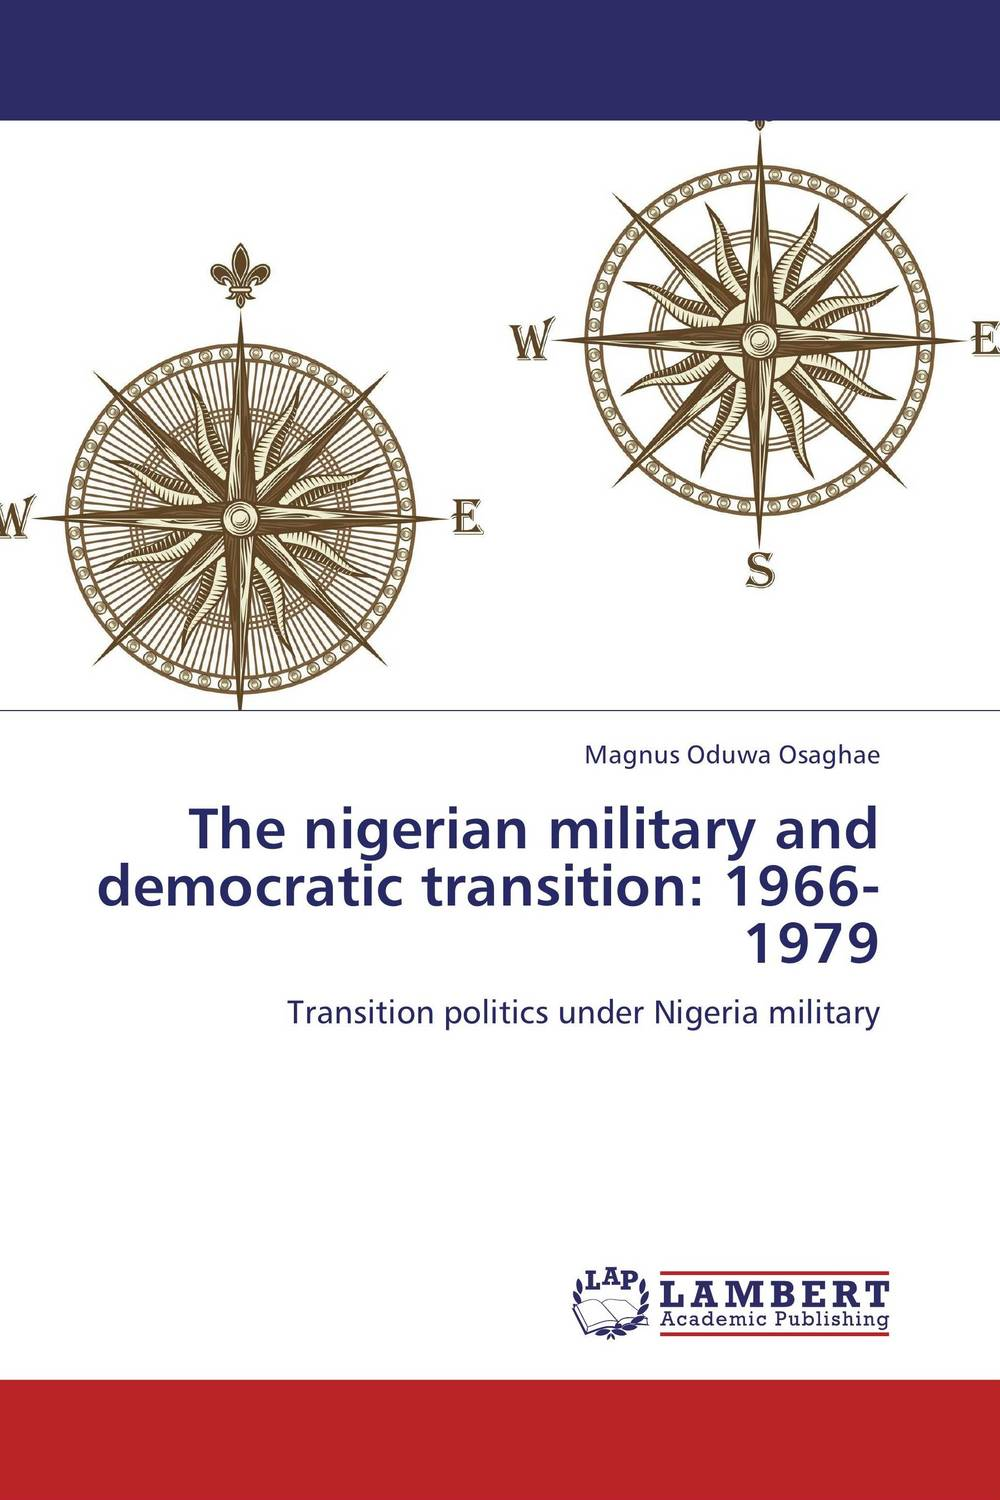 The nigerian military and democratic transition: 1966-1979 fighting corruption in nigeria